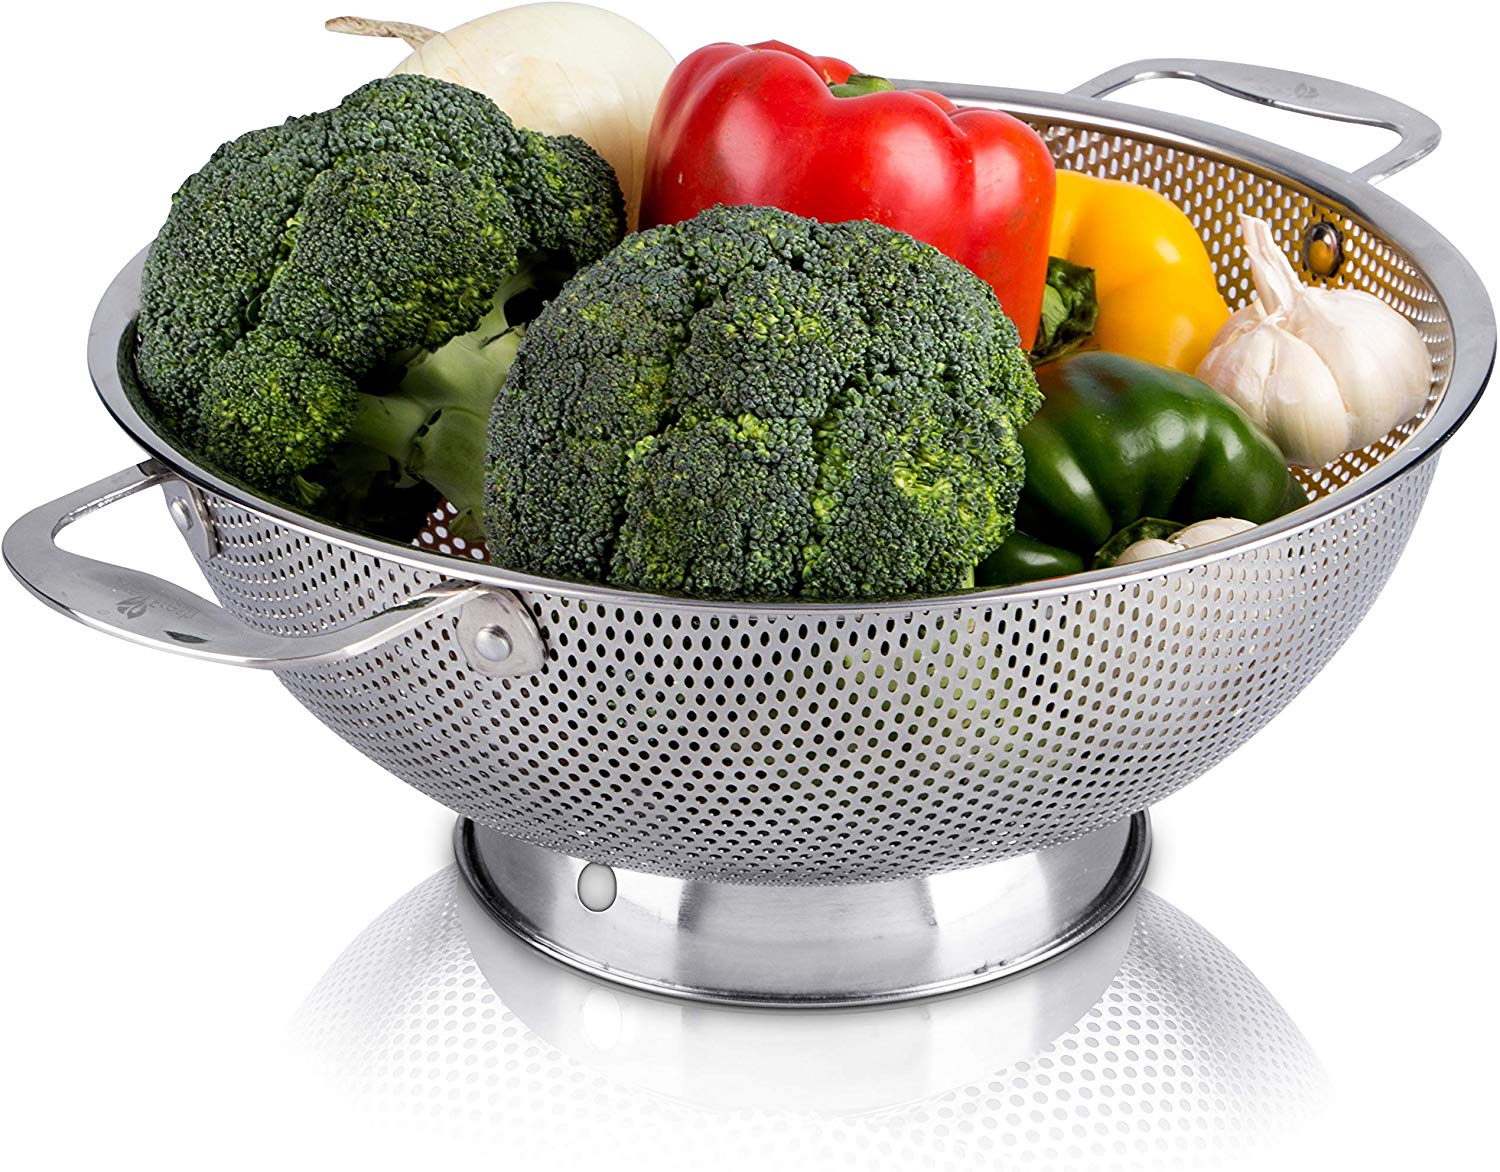 Live fresh stainless steel micro-perforated 5-quart colander